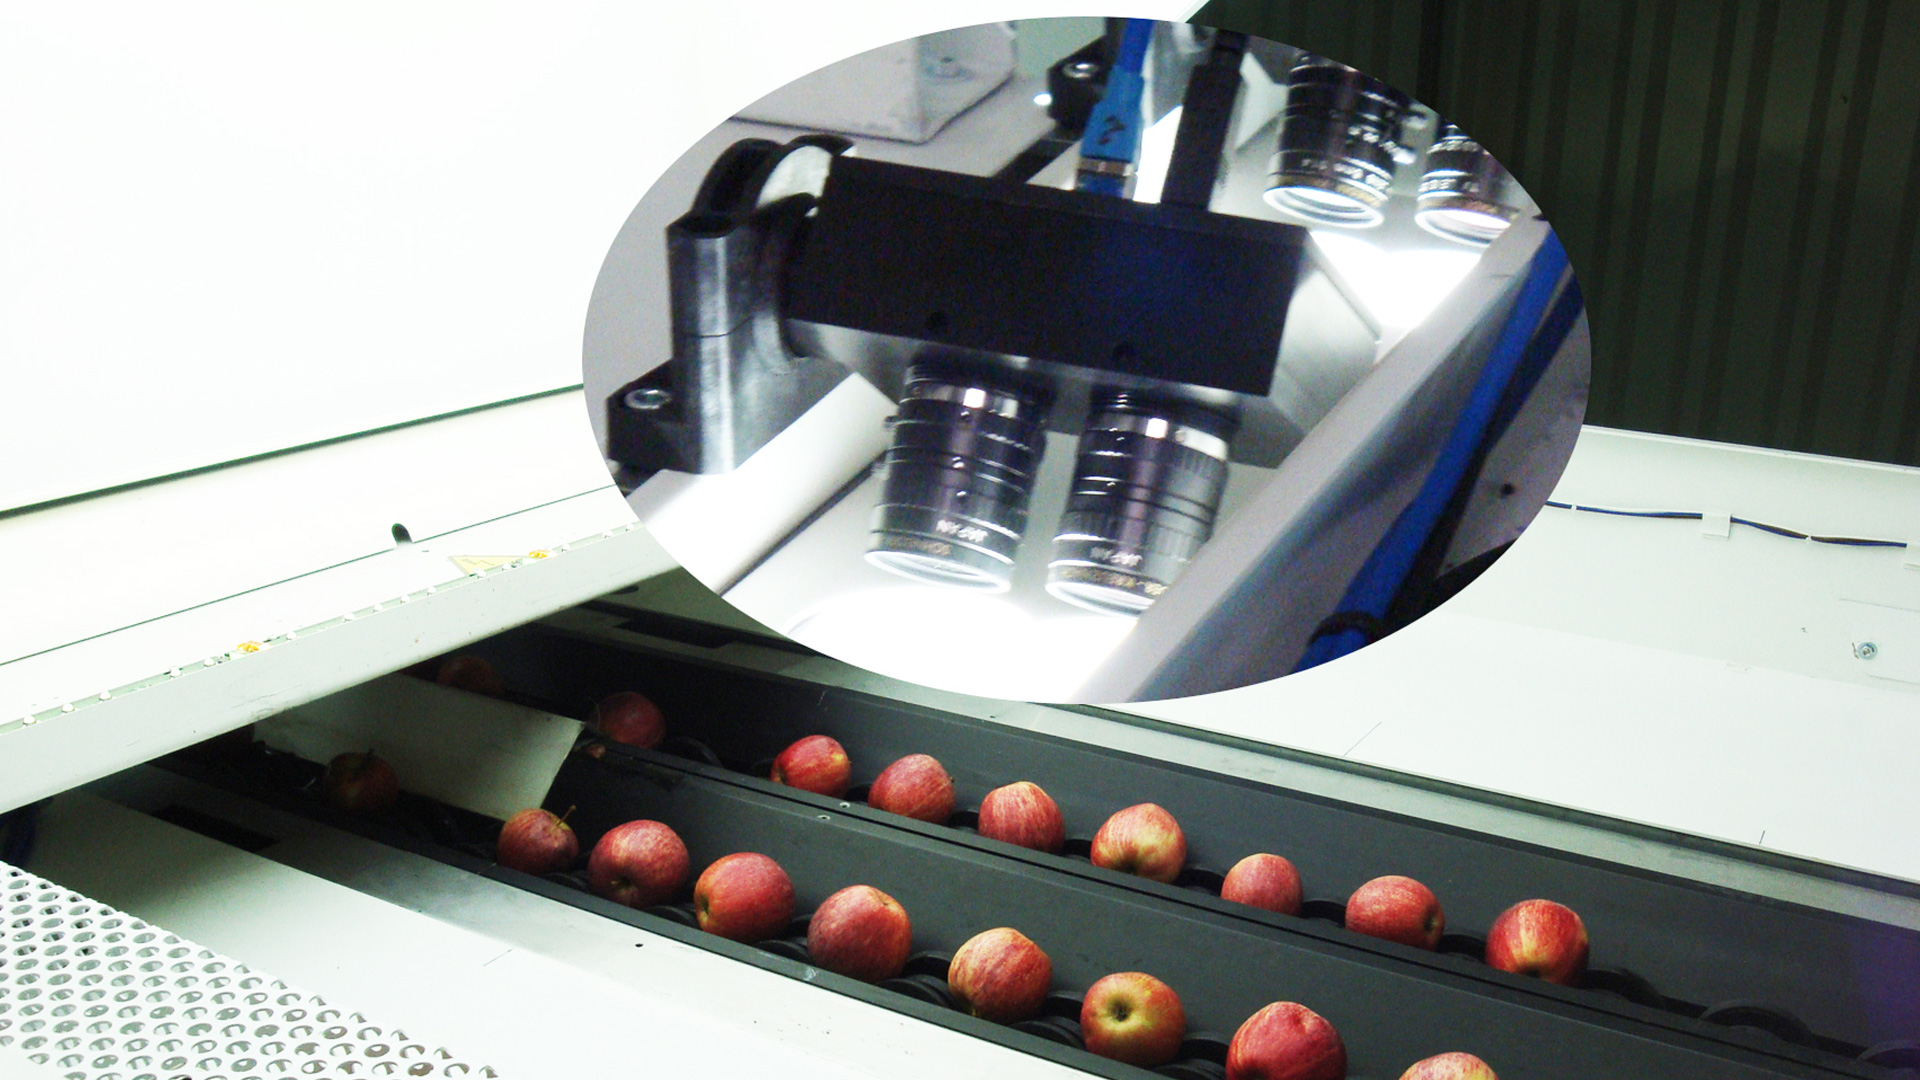 GLOBALSCAN® vision system taking pictures of the fruit